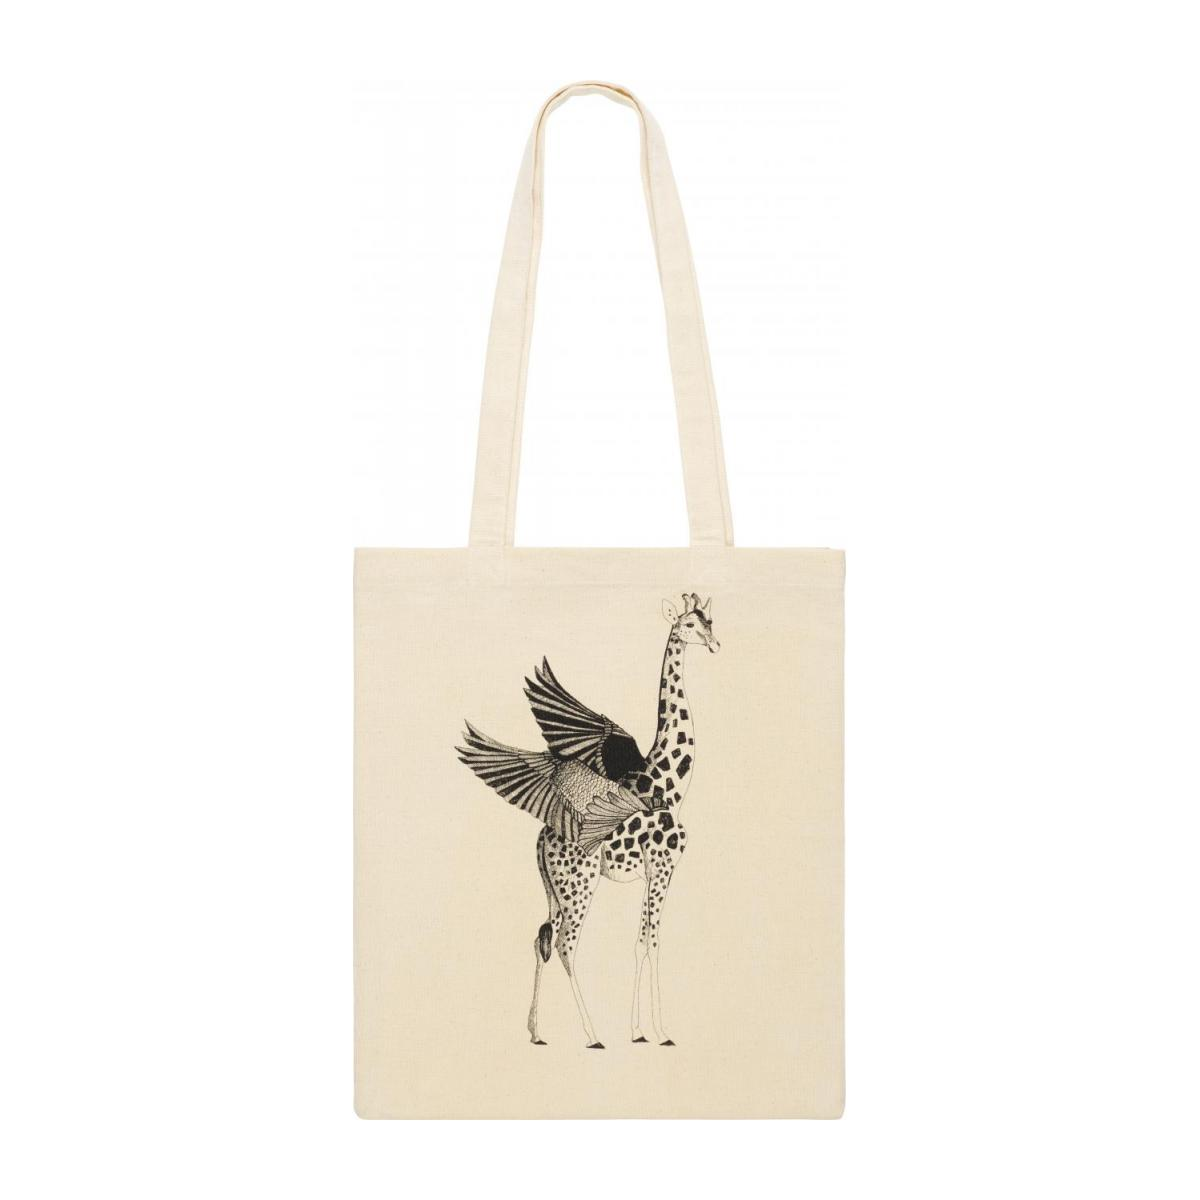 Black and White Patterned Cotton Shopping Bag 35x40cm n°1